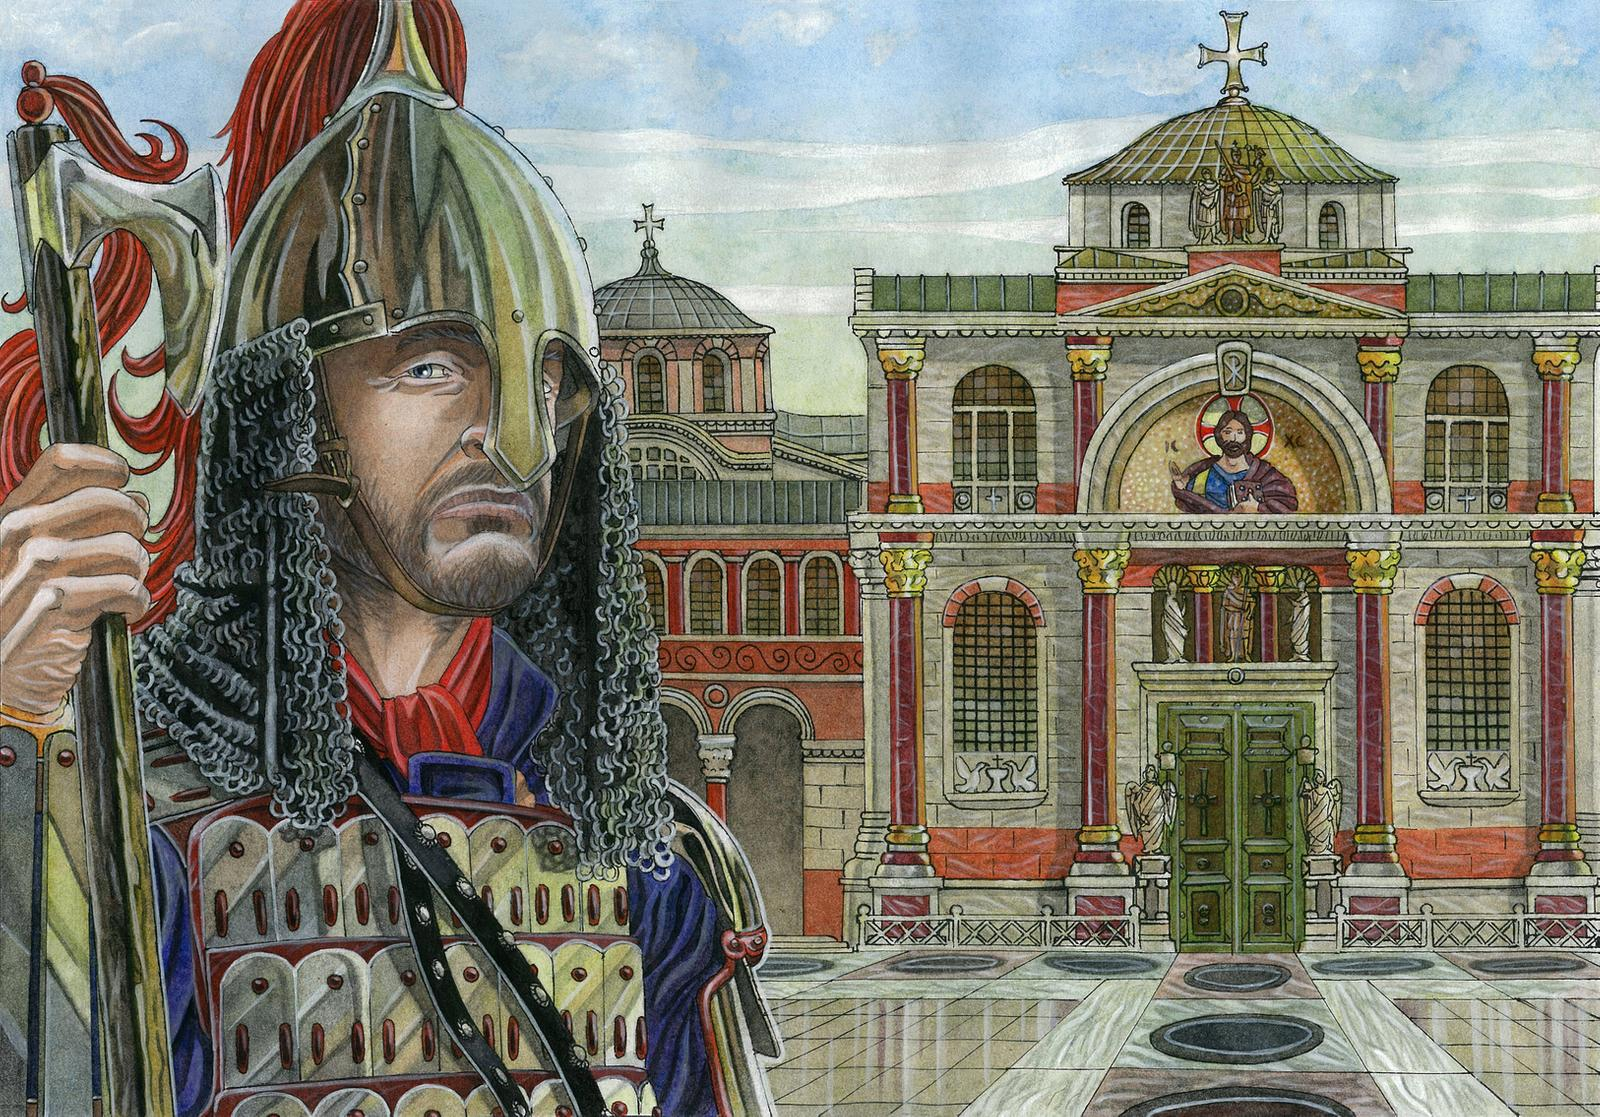 Guarding The Bronze gate of the Great Palace by Amelianvs.